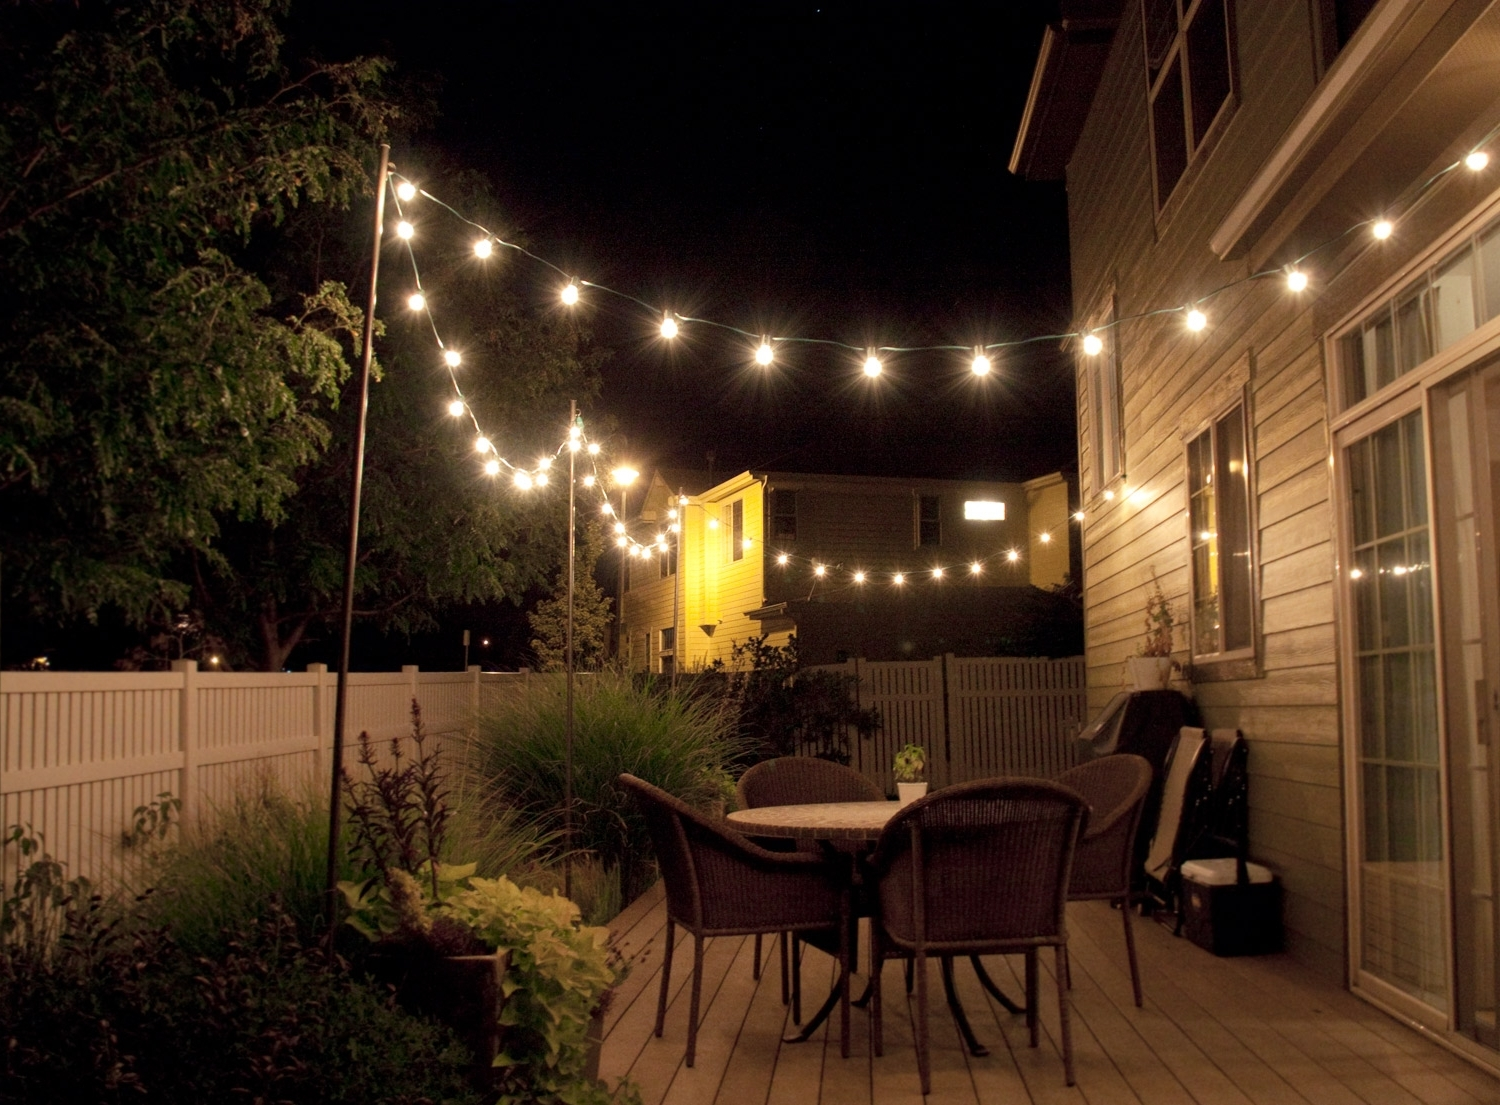 Outdoor Lanterns For Porch Within Latest Innovative Outdoor Hanging Porch Lights To Make Your Home Look (Gallery 12 of 20)